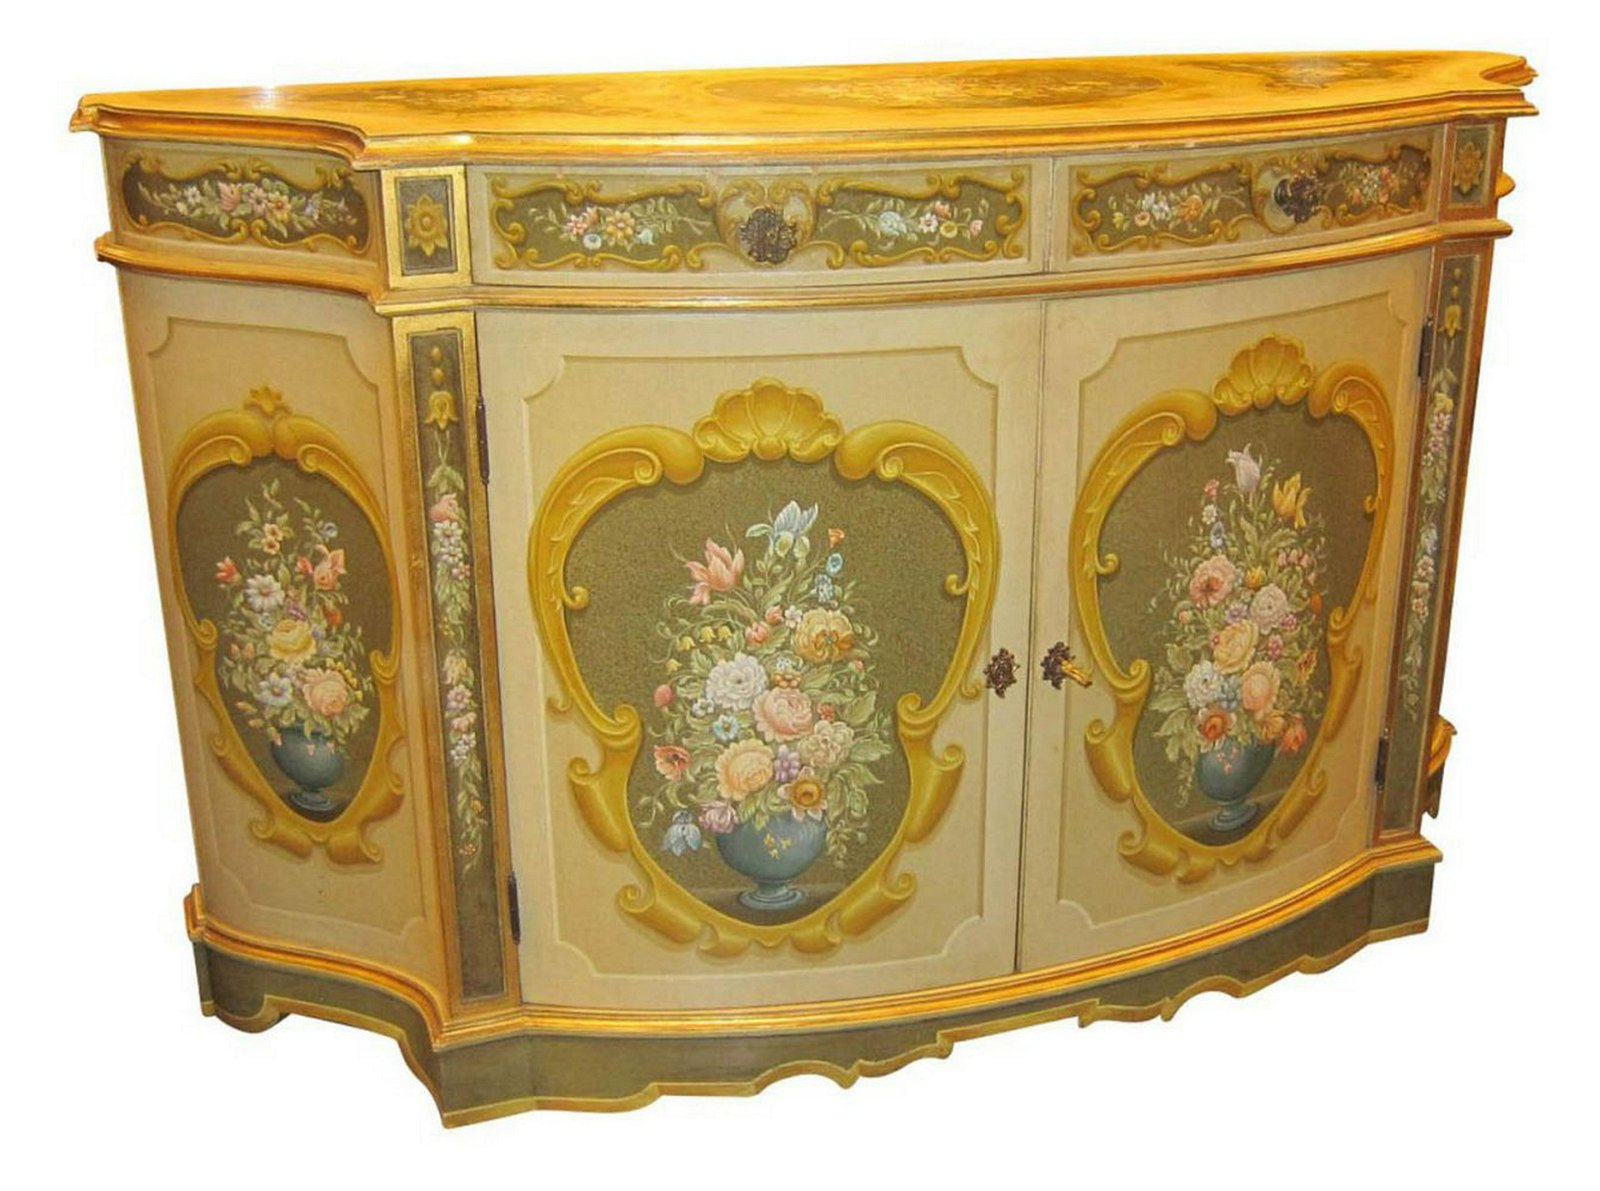 Hand-carved and painted sideboard